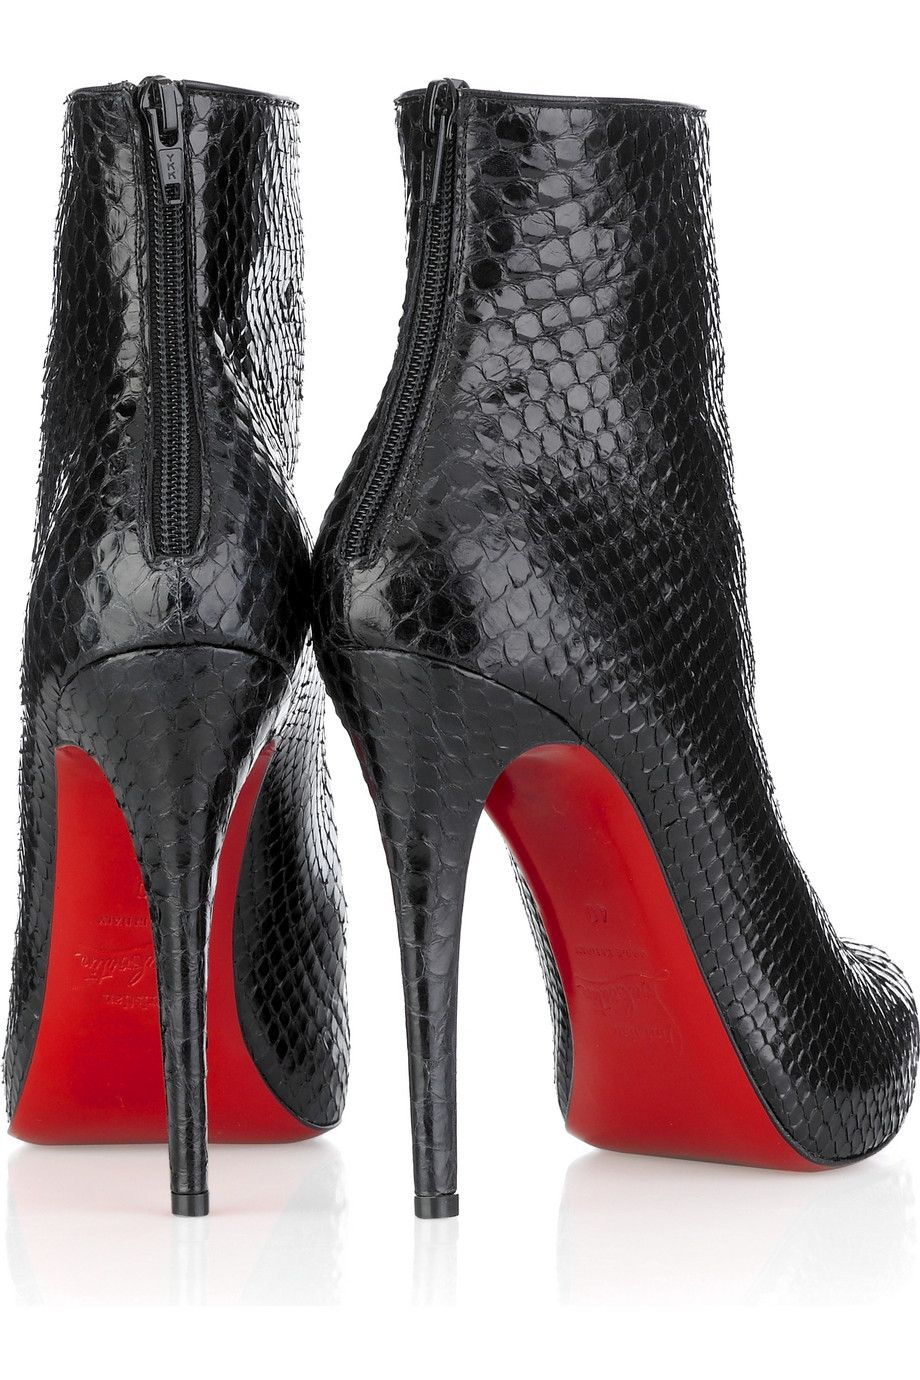 chaussures louboutin femme rouge